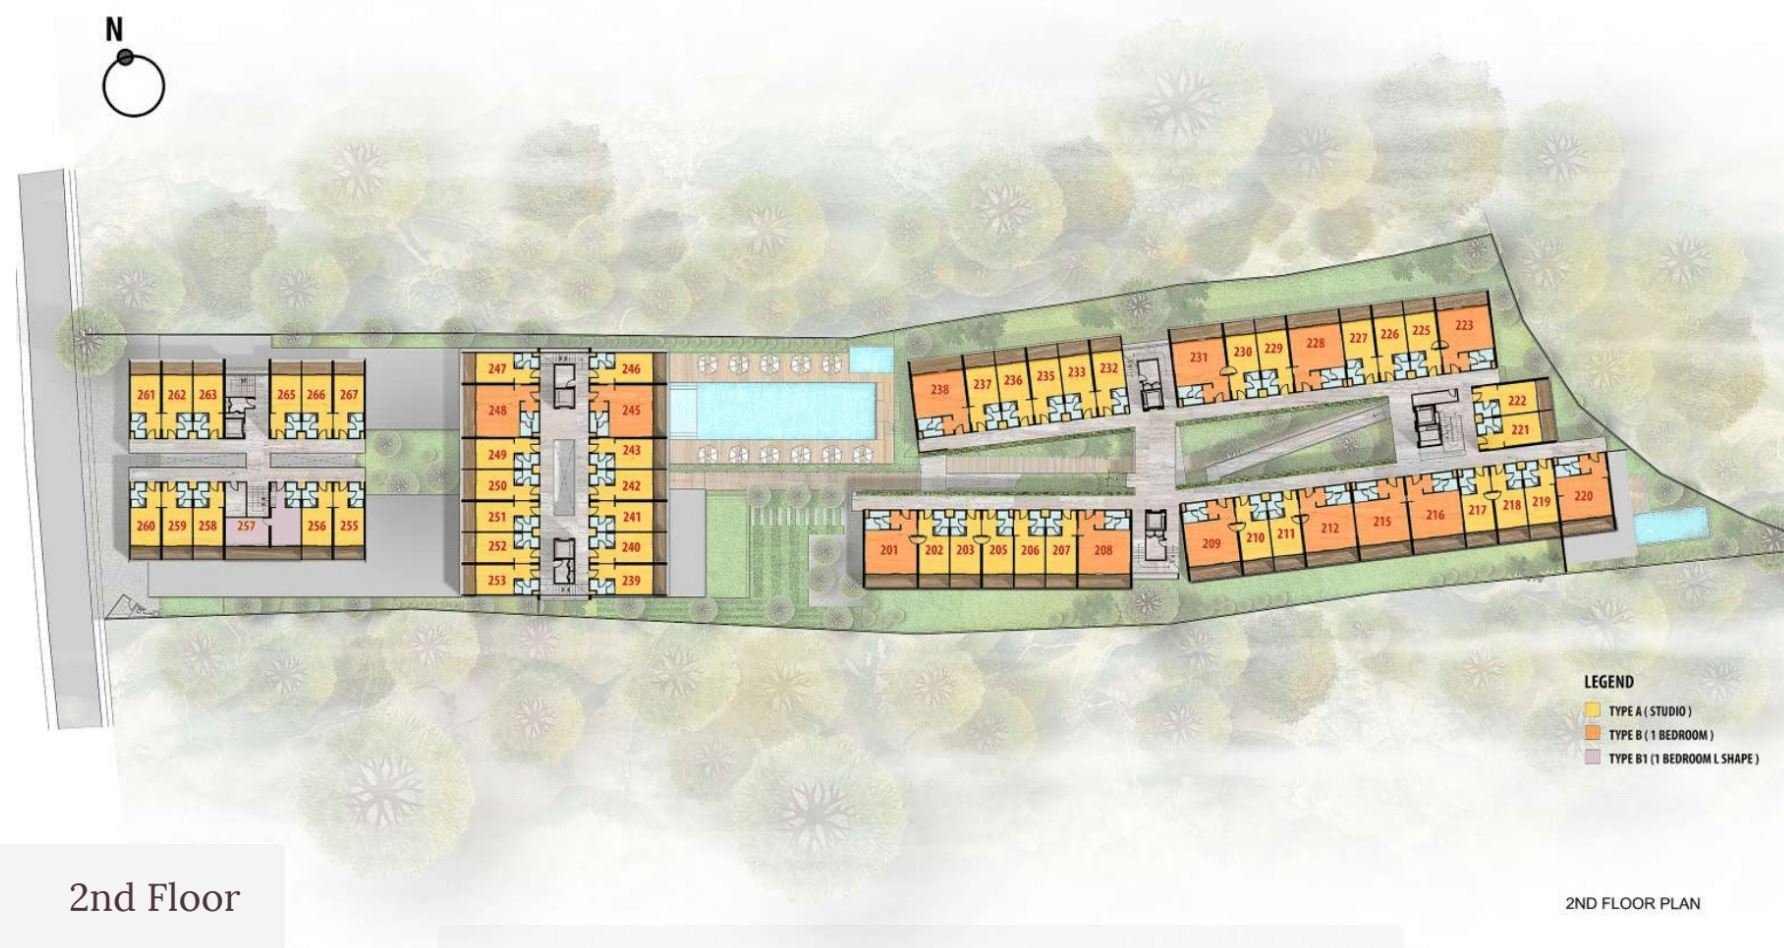 Citadines Berawa Beach Bali Site Plan 2nd Floor